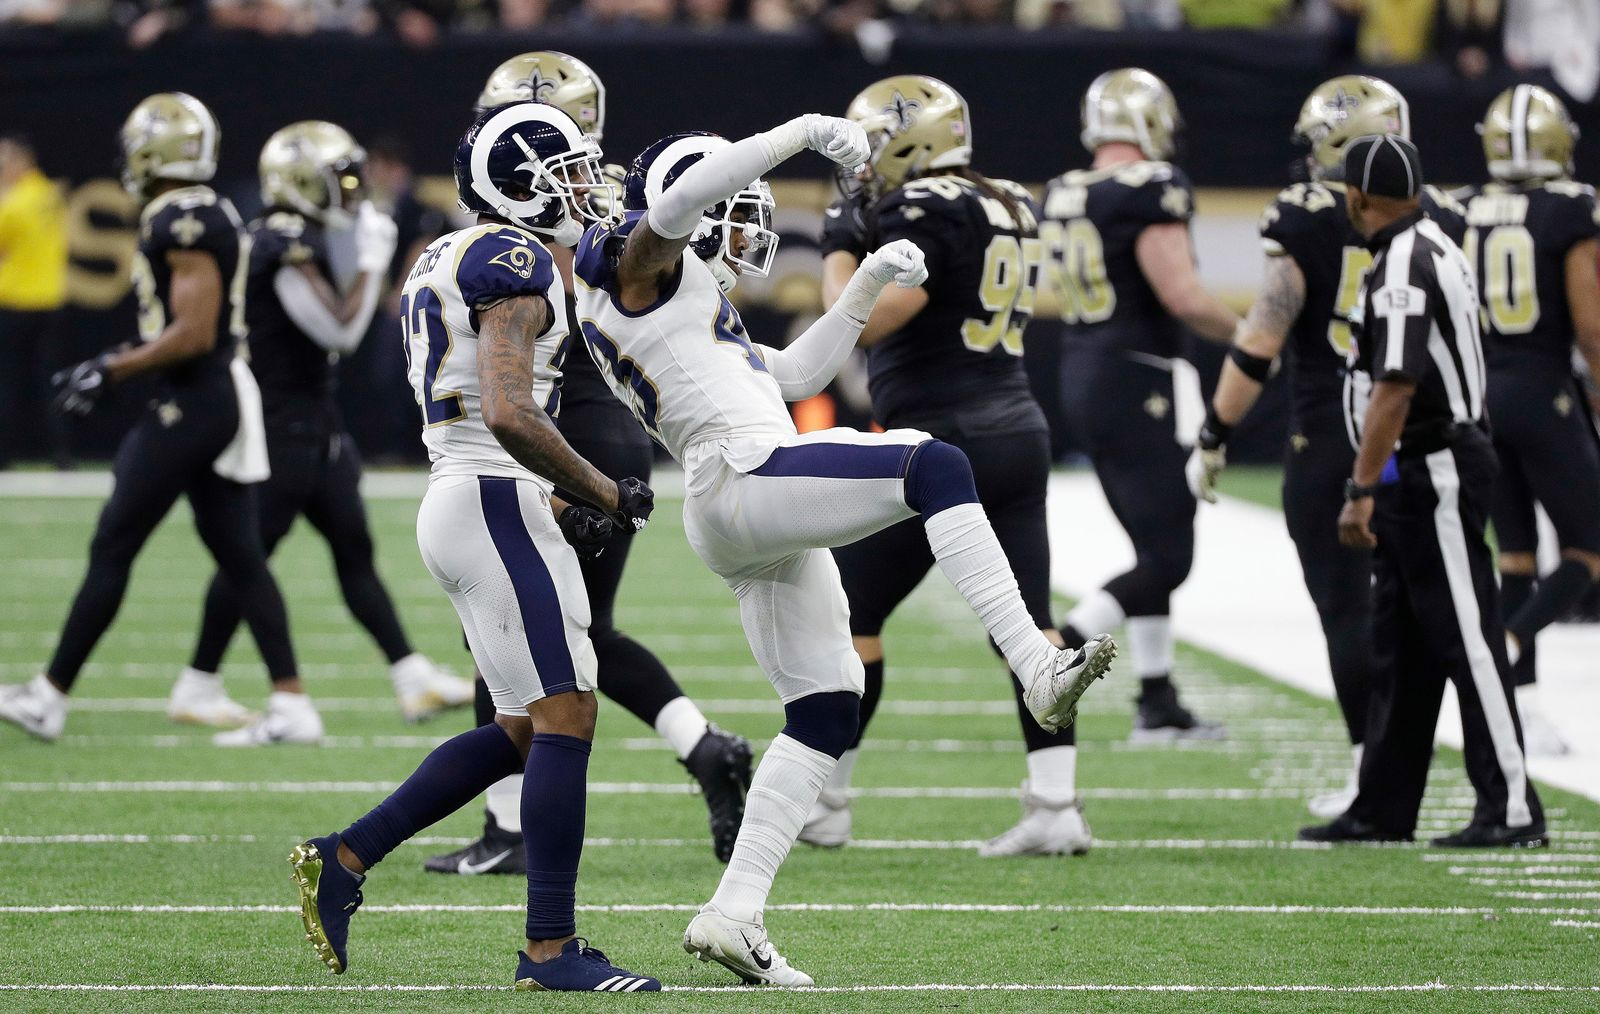 Los Angeles Rams strong safety John Johnson (43) and team mates celebrate during overtime of the NFL football NFC championship game against the New Orleans Saints, Sunday, Jan. 20, 2019, in New Orleans. (AP Photo/David J. Phillip)